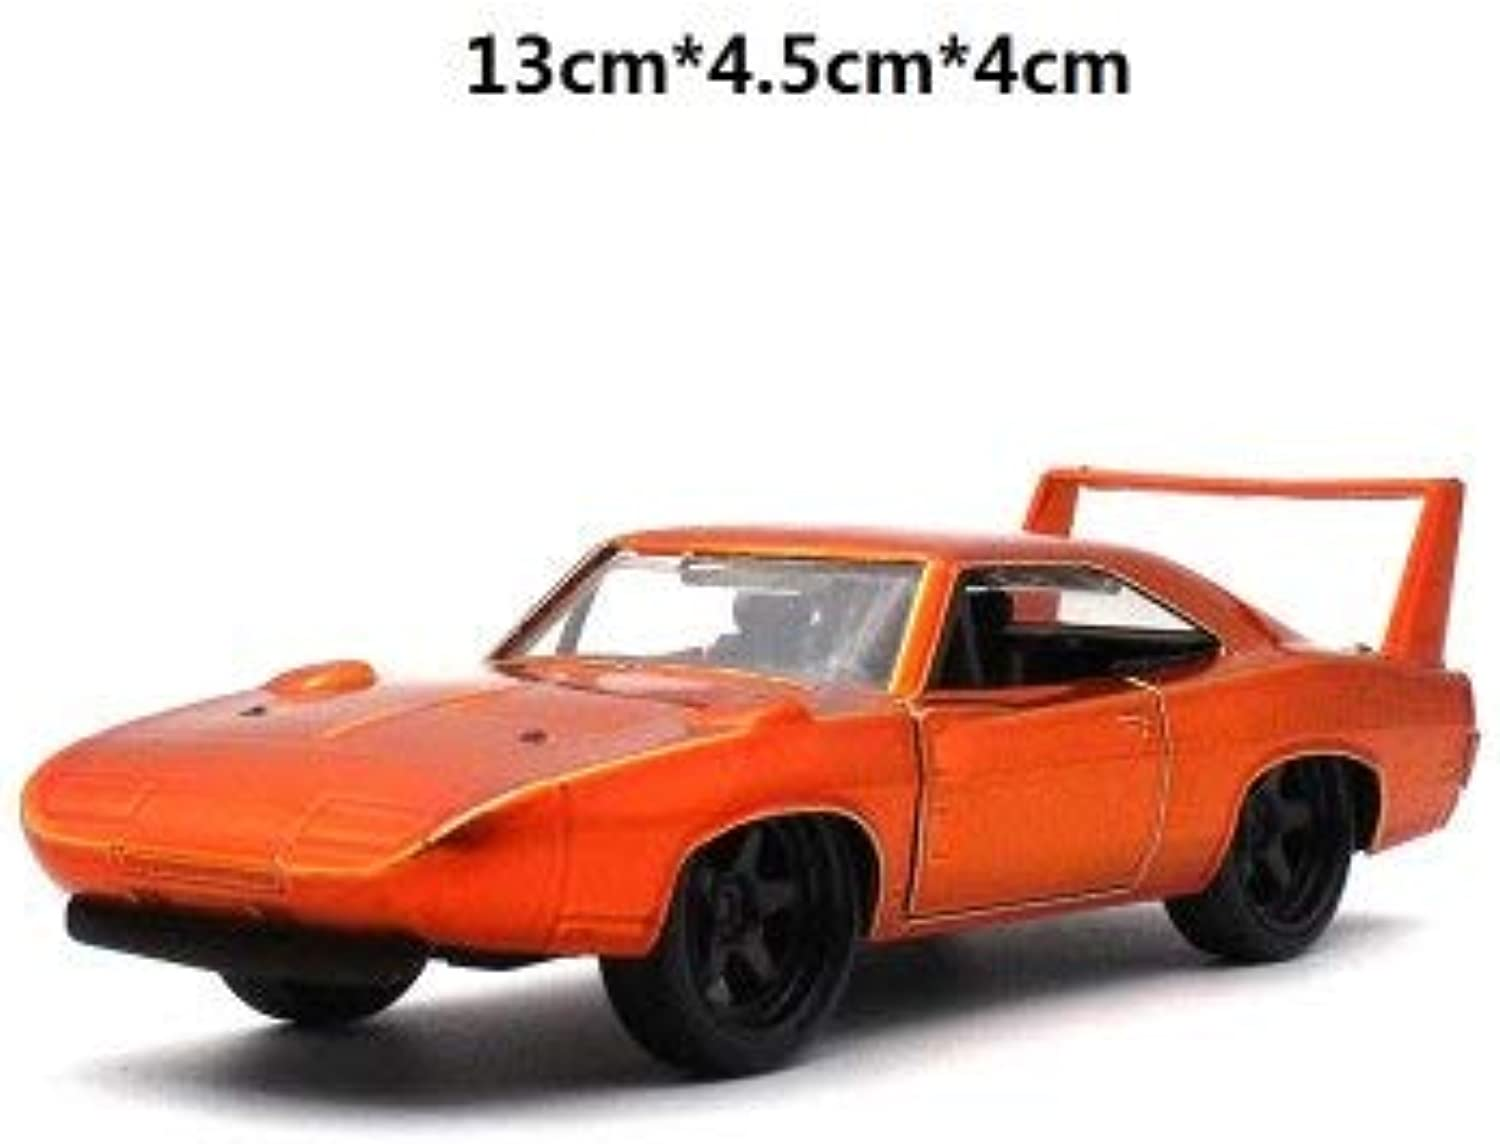 Generic Kids Toys 1 32 Fast & Furious 8 Diecast Car Model Chevrolet Honda Dodge Mazda Plymouth Metallic Material Collection Decoration Plymouth Superbird